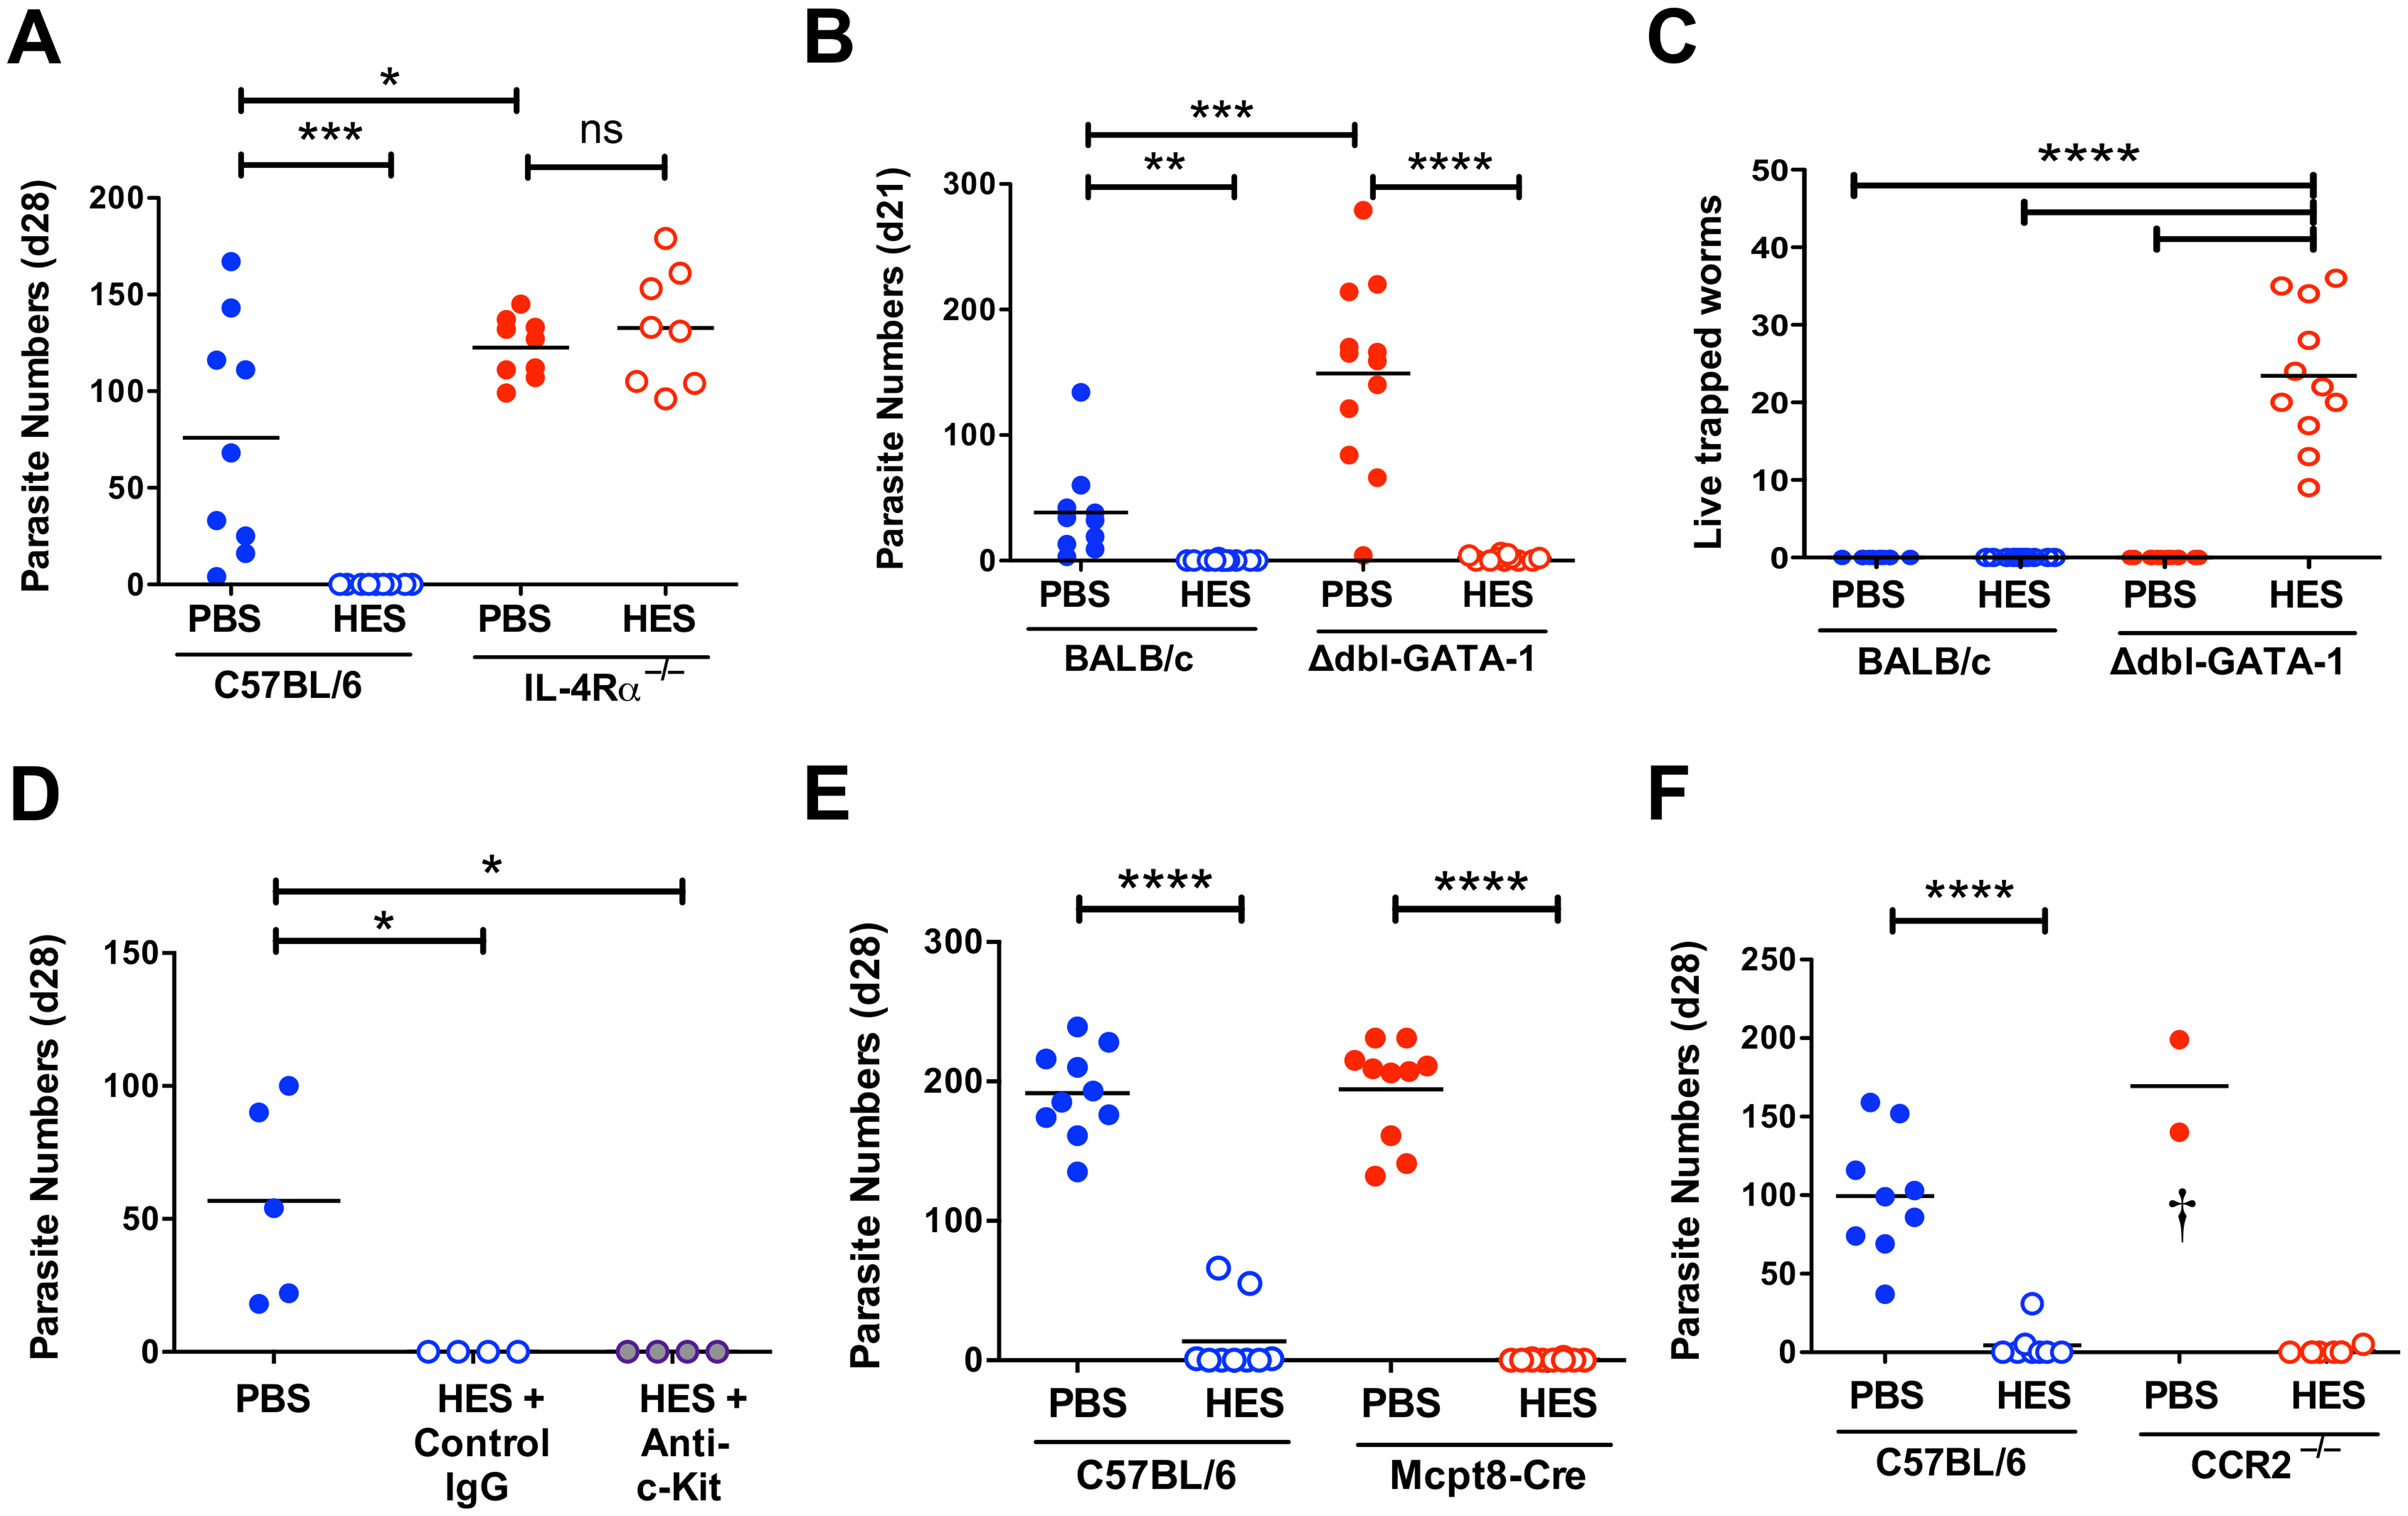 Vaccine-induced immunity requires IL-4R-mediated signaling but not eosinophils, mast cells, basophils or CCR2+ monocytes.